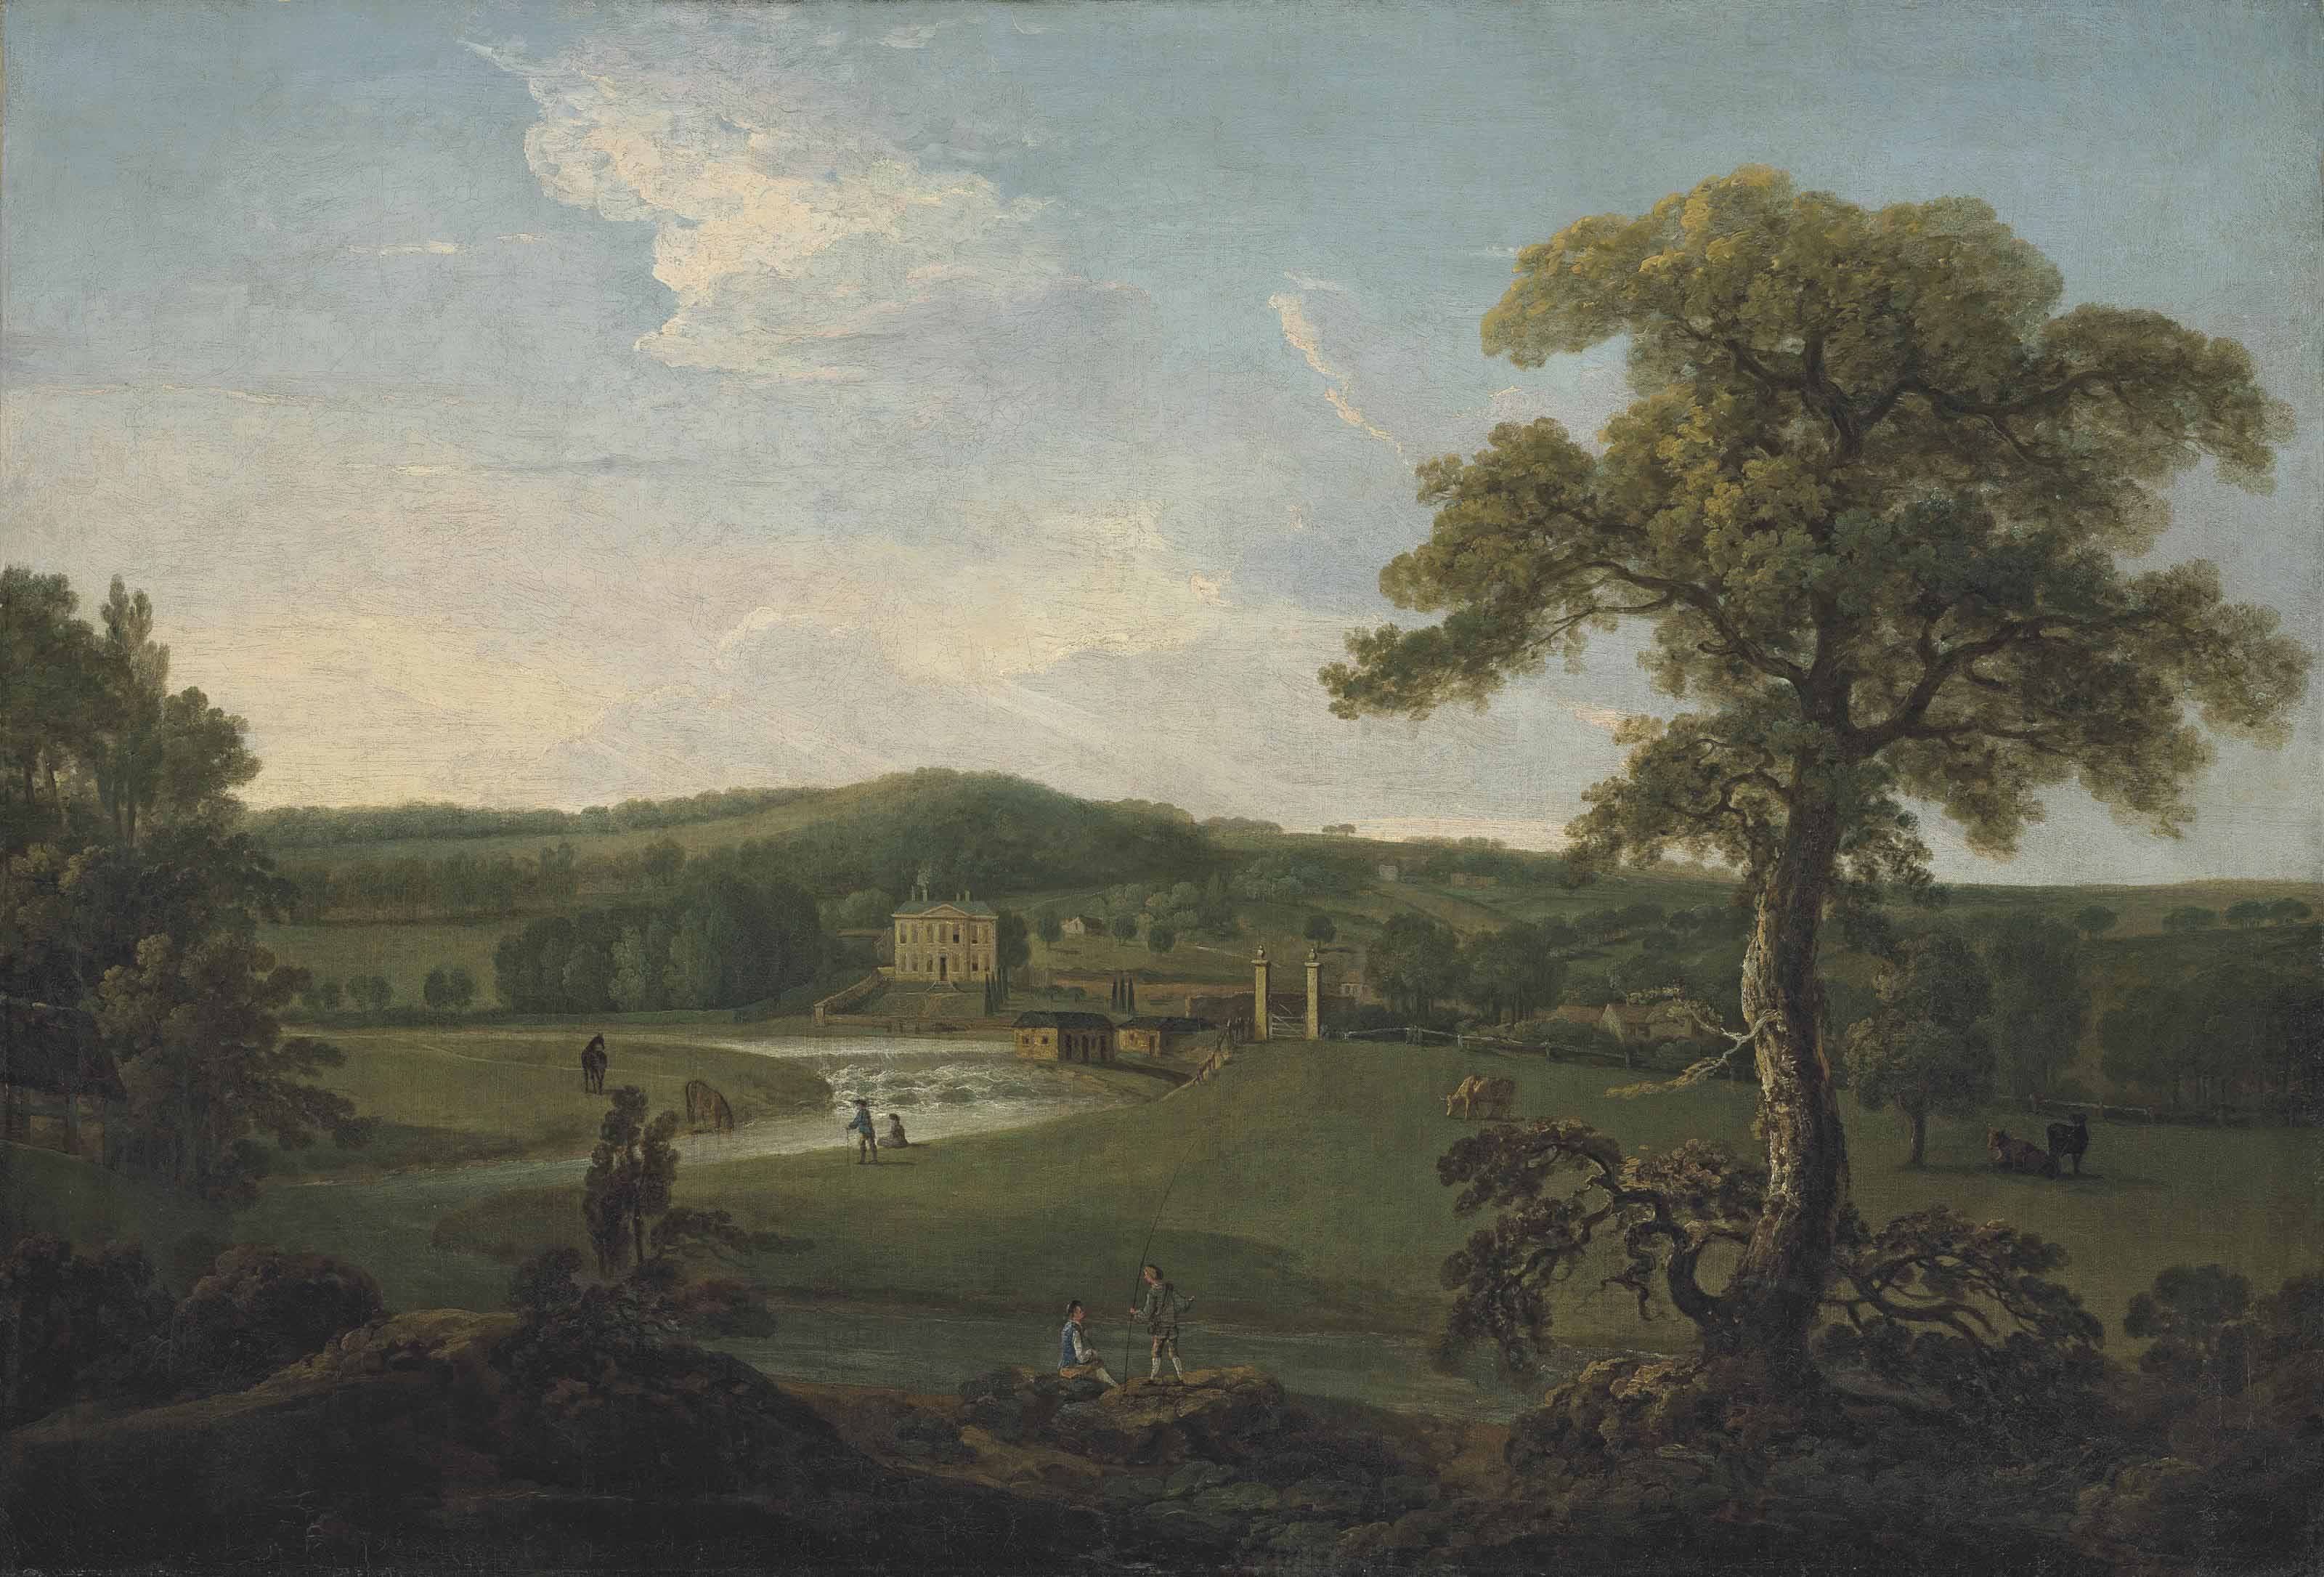 A view of Eshott Hall, North Yorkshire, with anglers on the River Aire